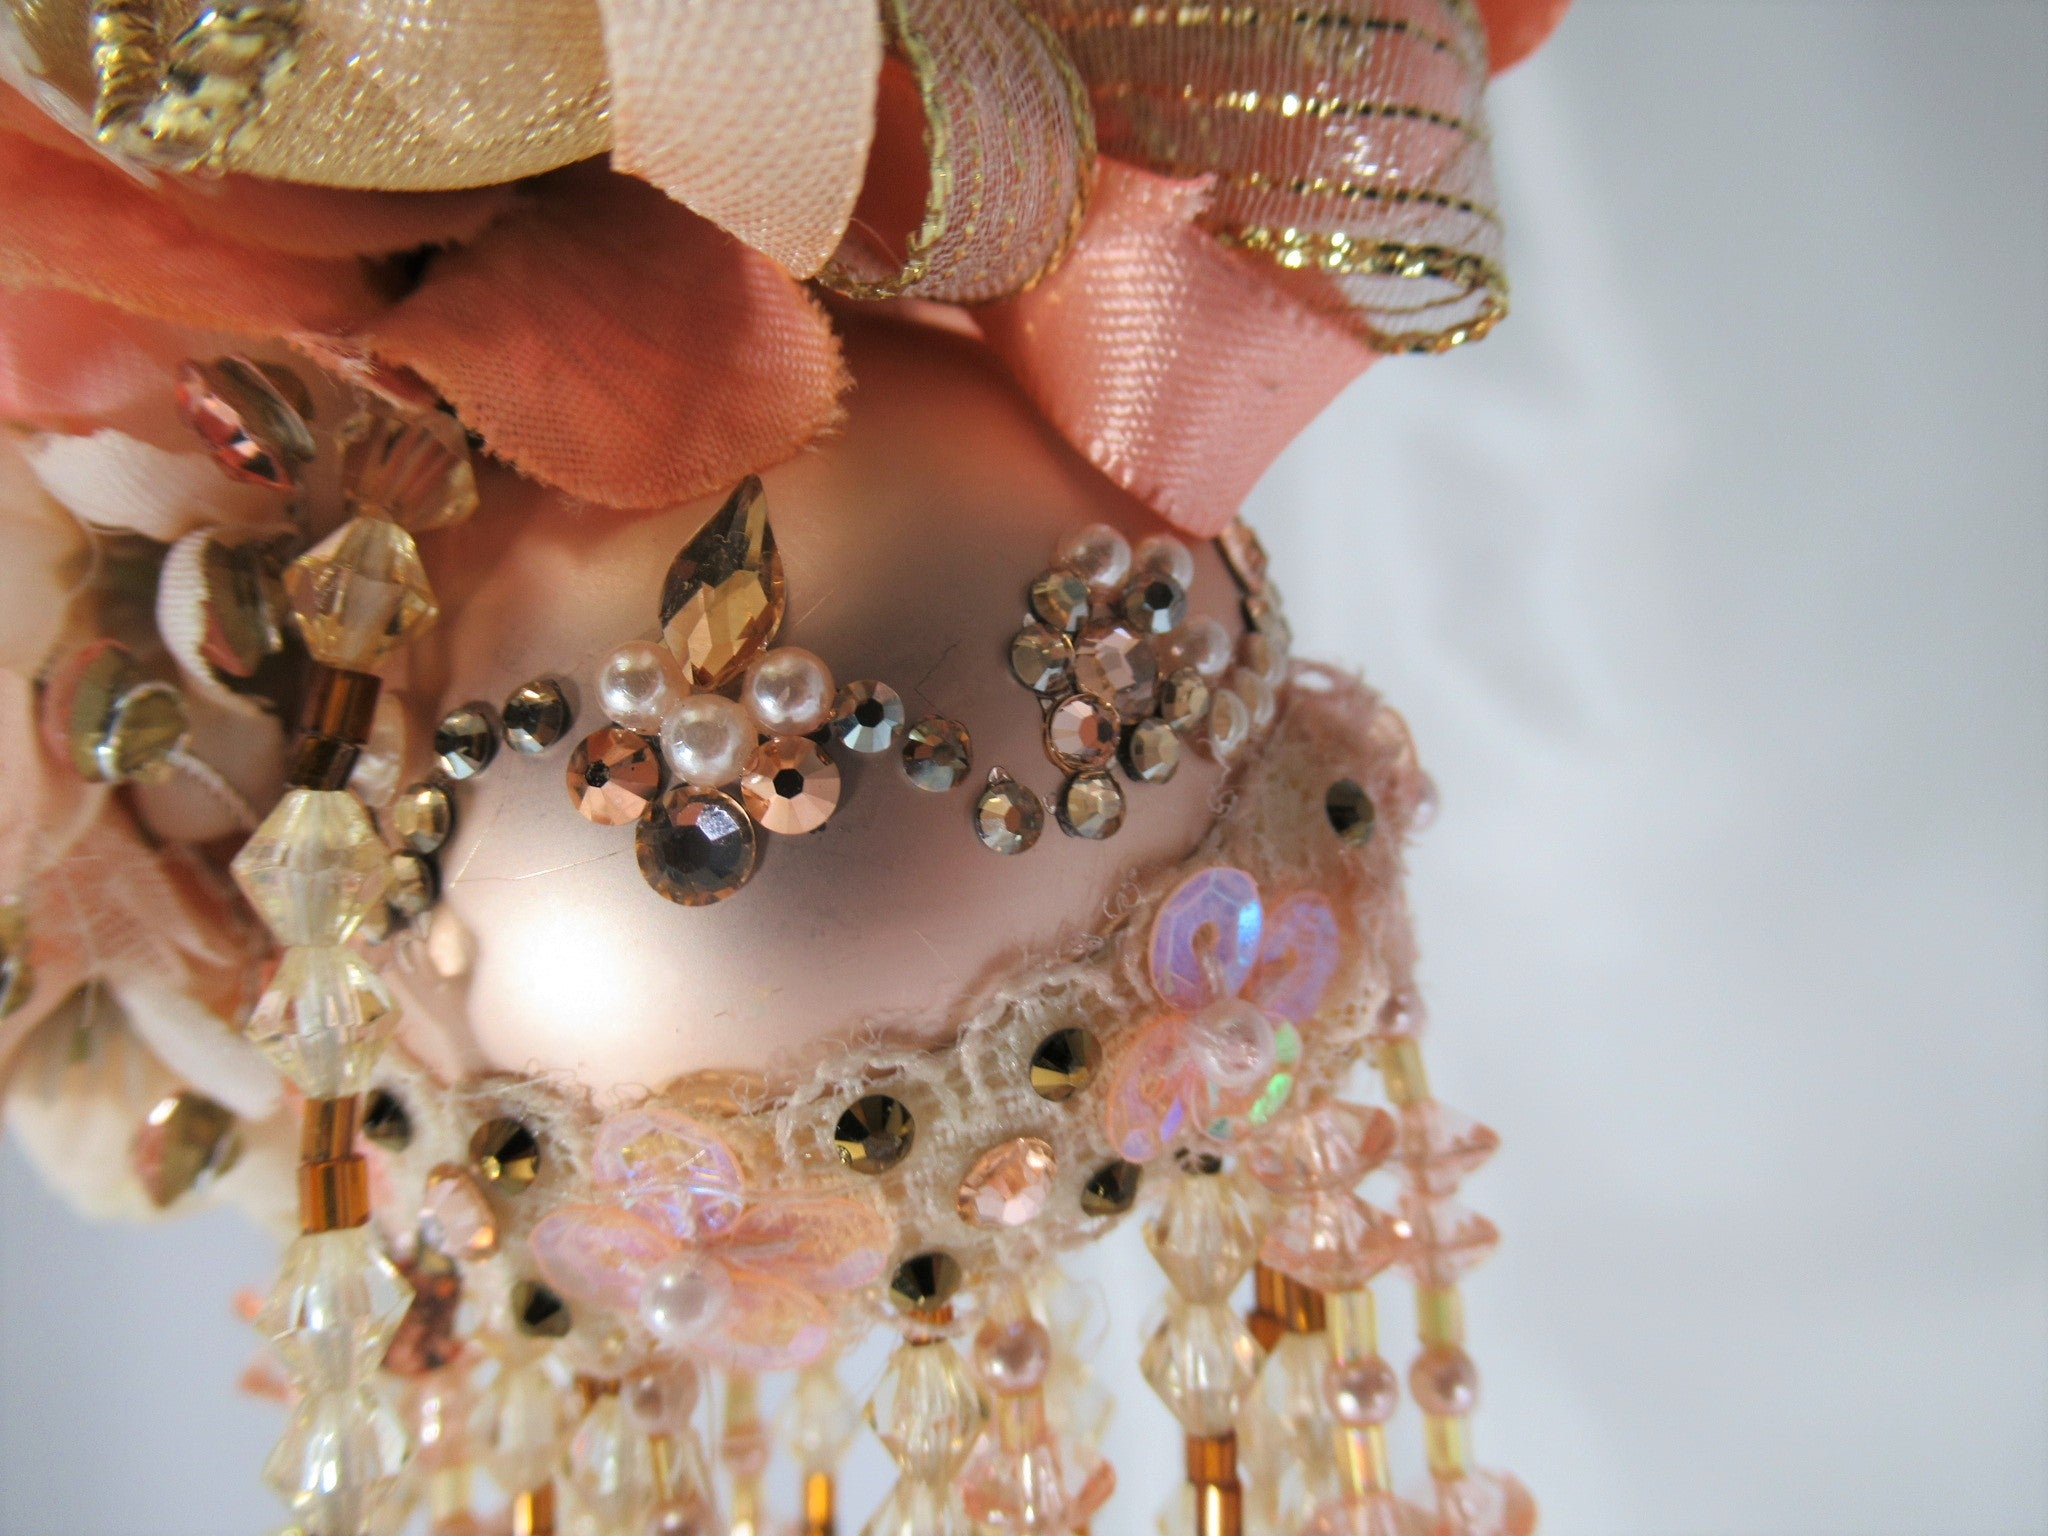 Peaches and Cream Small Beaded Victorian Ornament with 105 Swarvoski Crystals and Pearls - Odyssey Creations